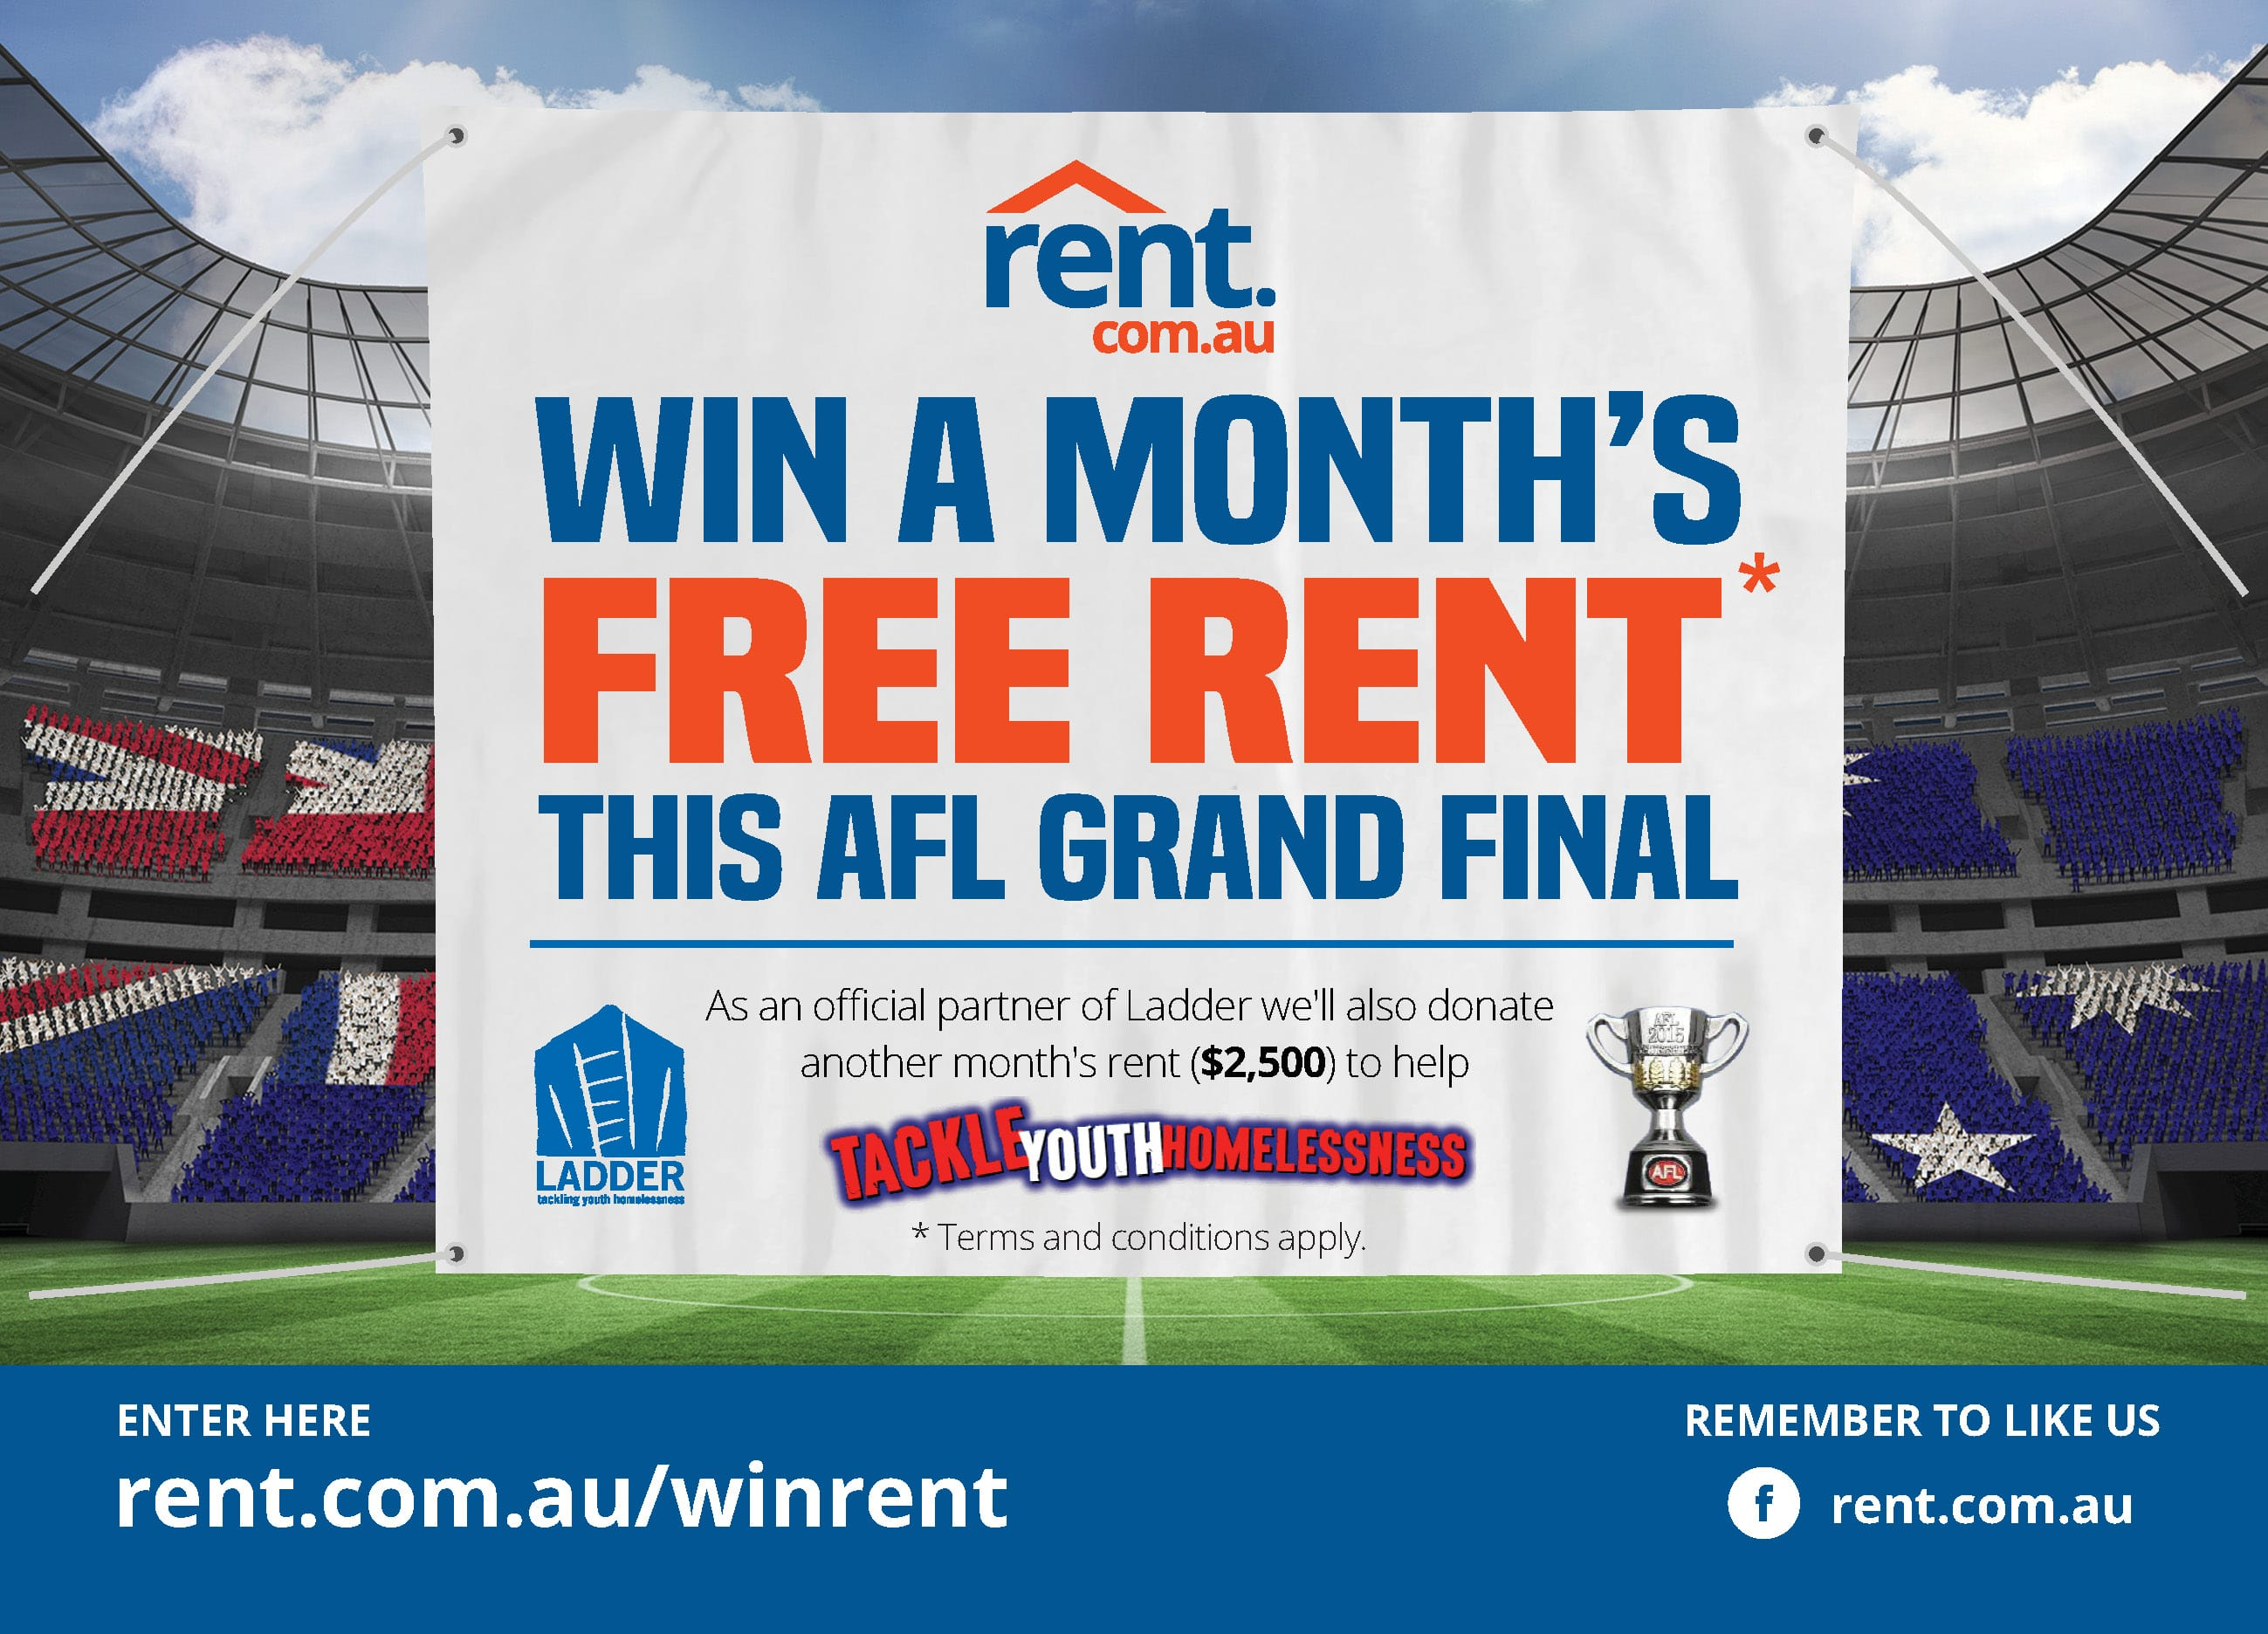 Photo of Australia's 7 million Renters Urged to 'Tackle' Youth Homelessness for  2015 AFL Grand Final